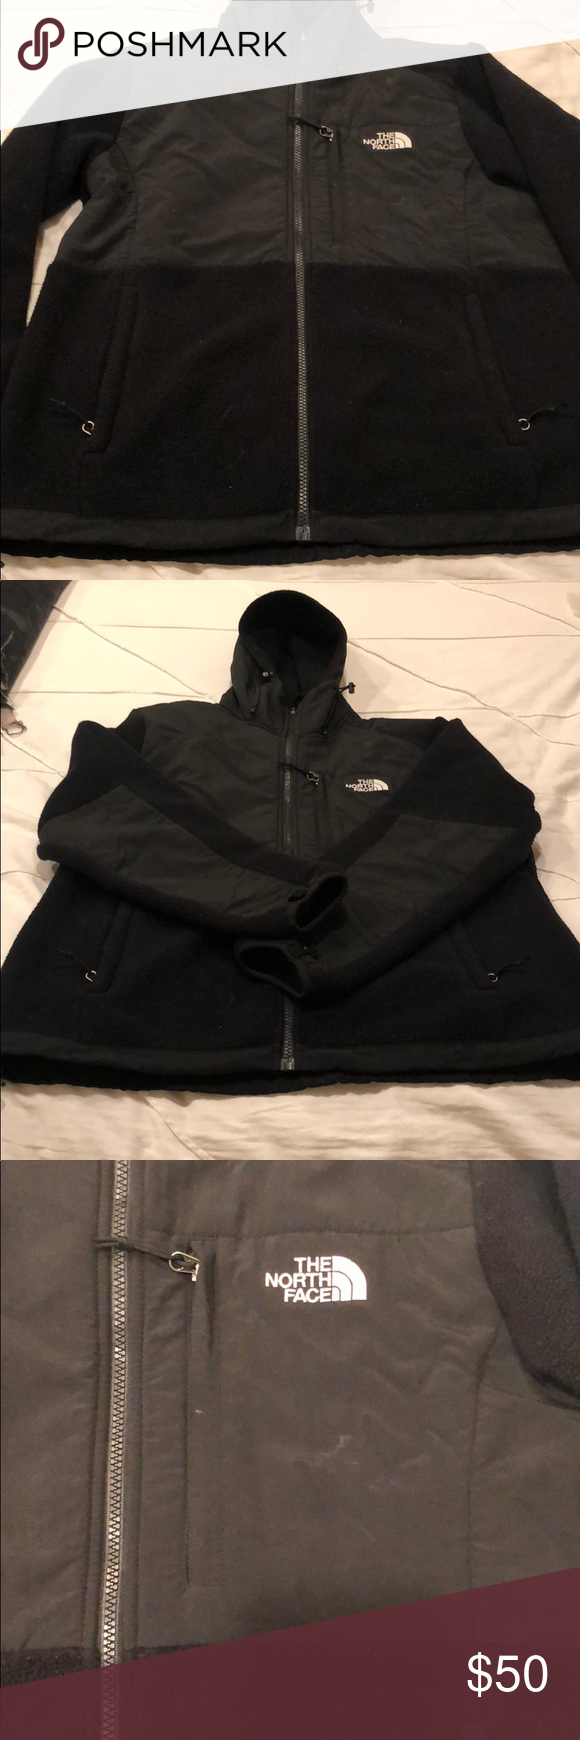 509cf2ad31 North Face Jacket North face jacket with a hood. Great shape! Size  L The North  Face Jackets   Coats